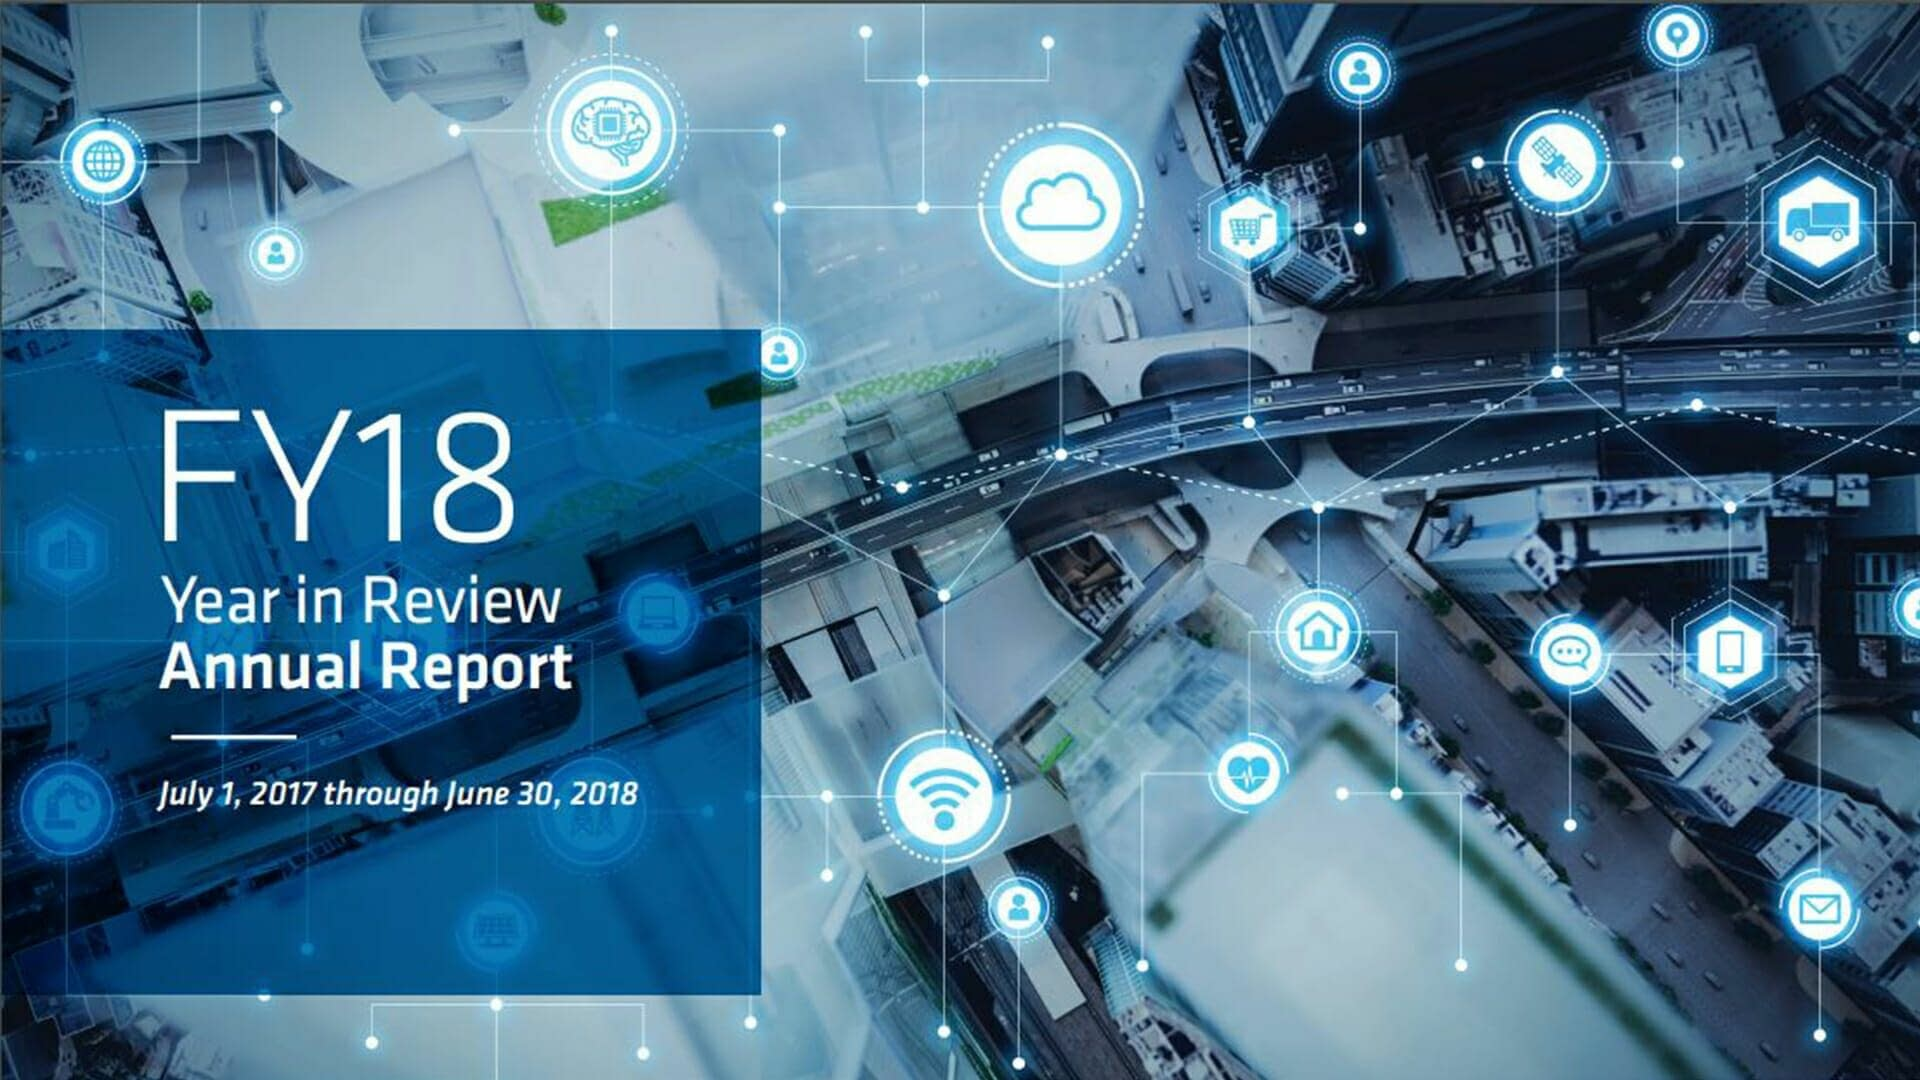 Latest IFMA annual report available